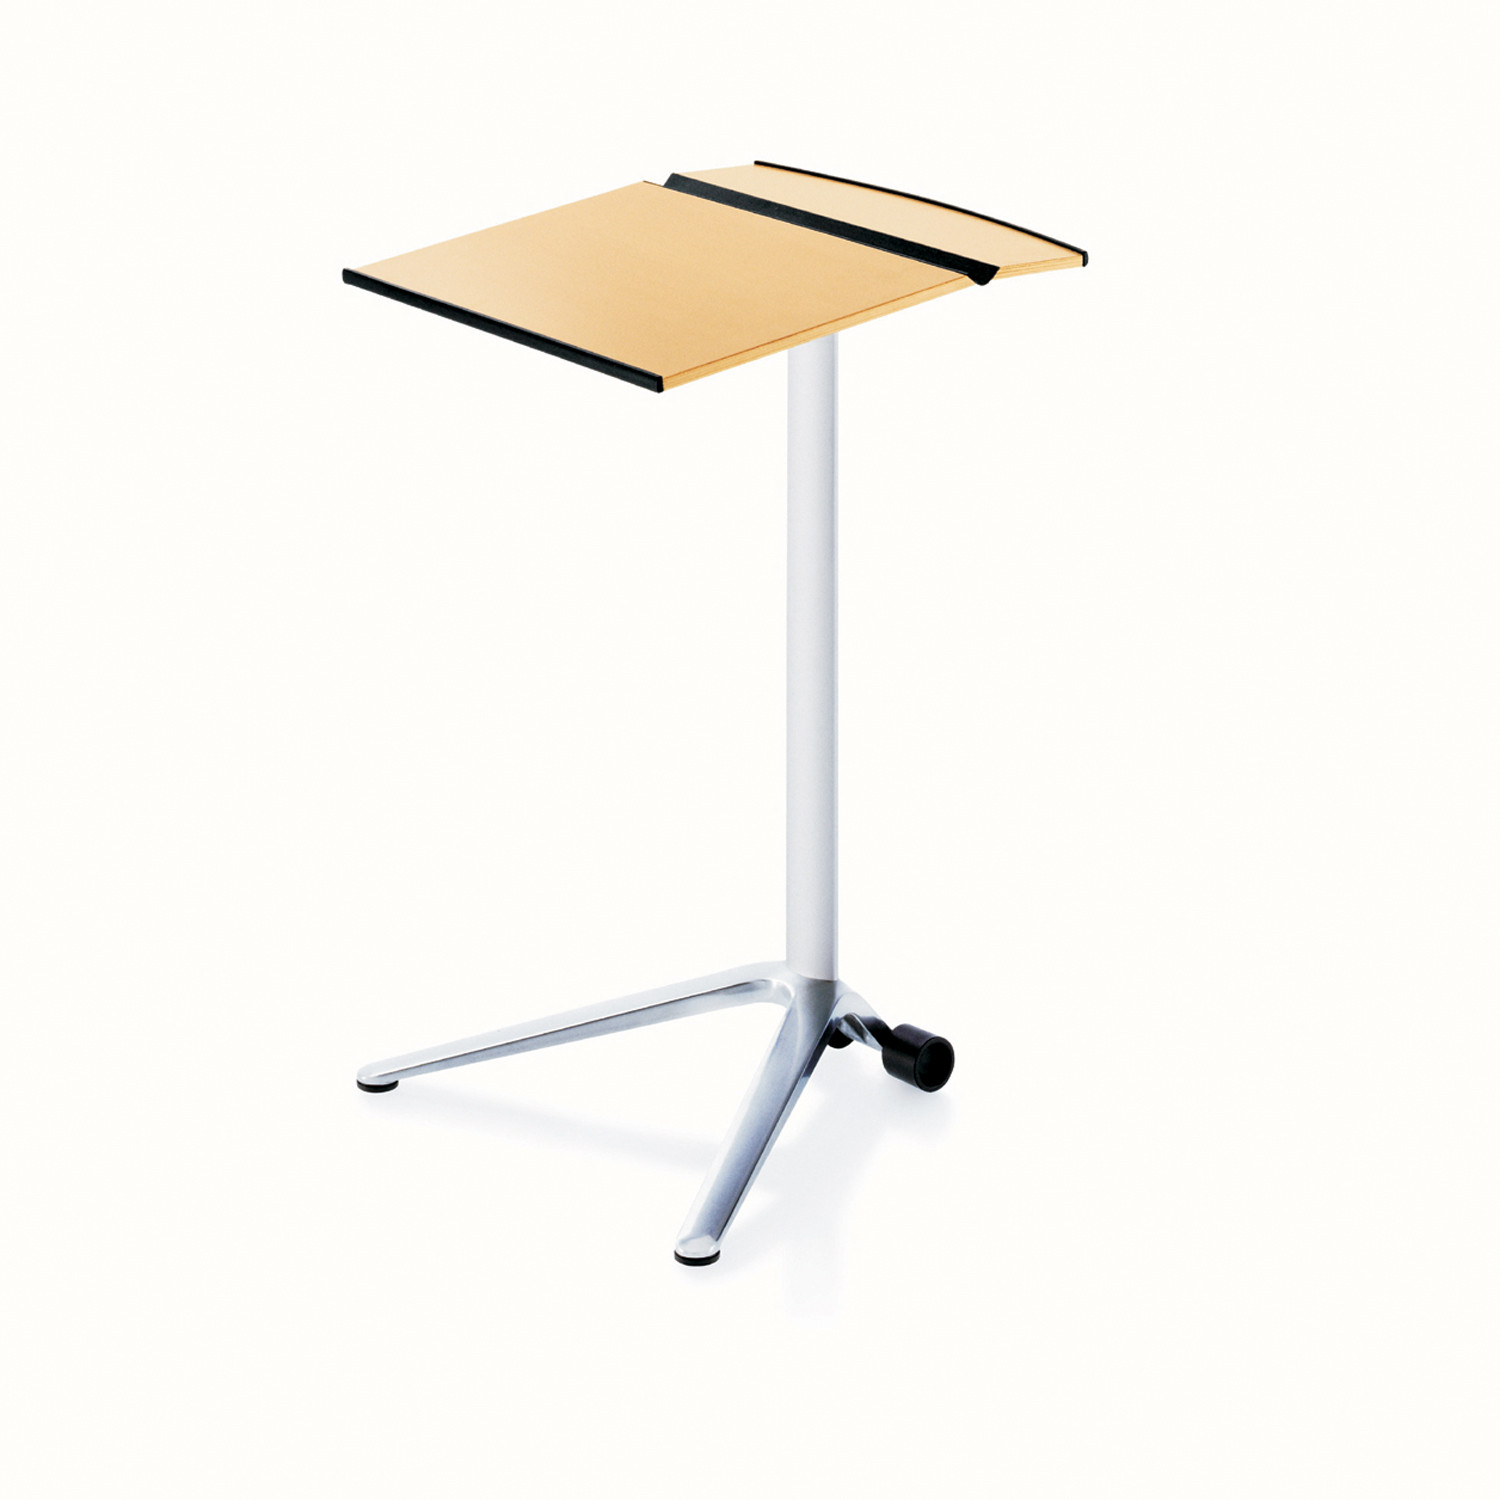 Confair Lectern - Mobile Desk Model